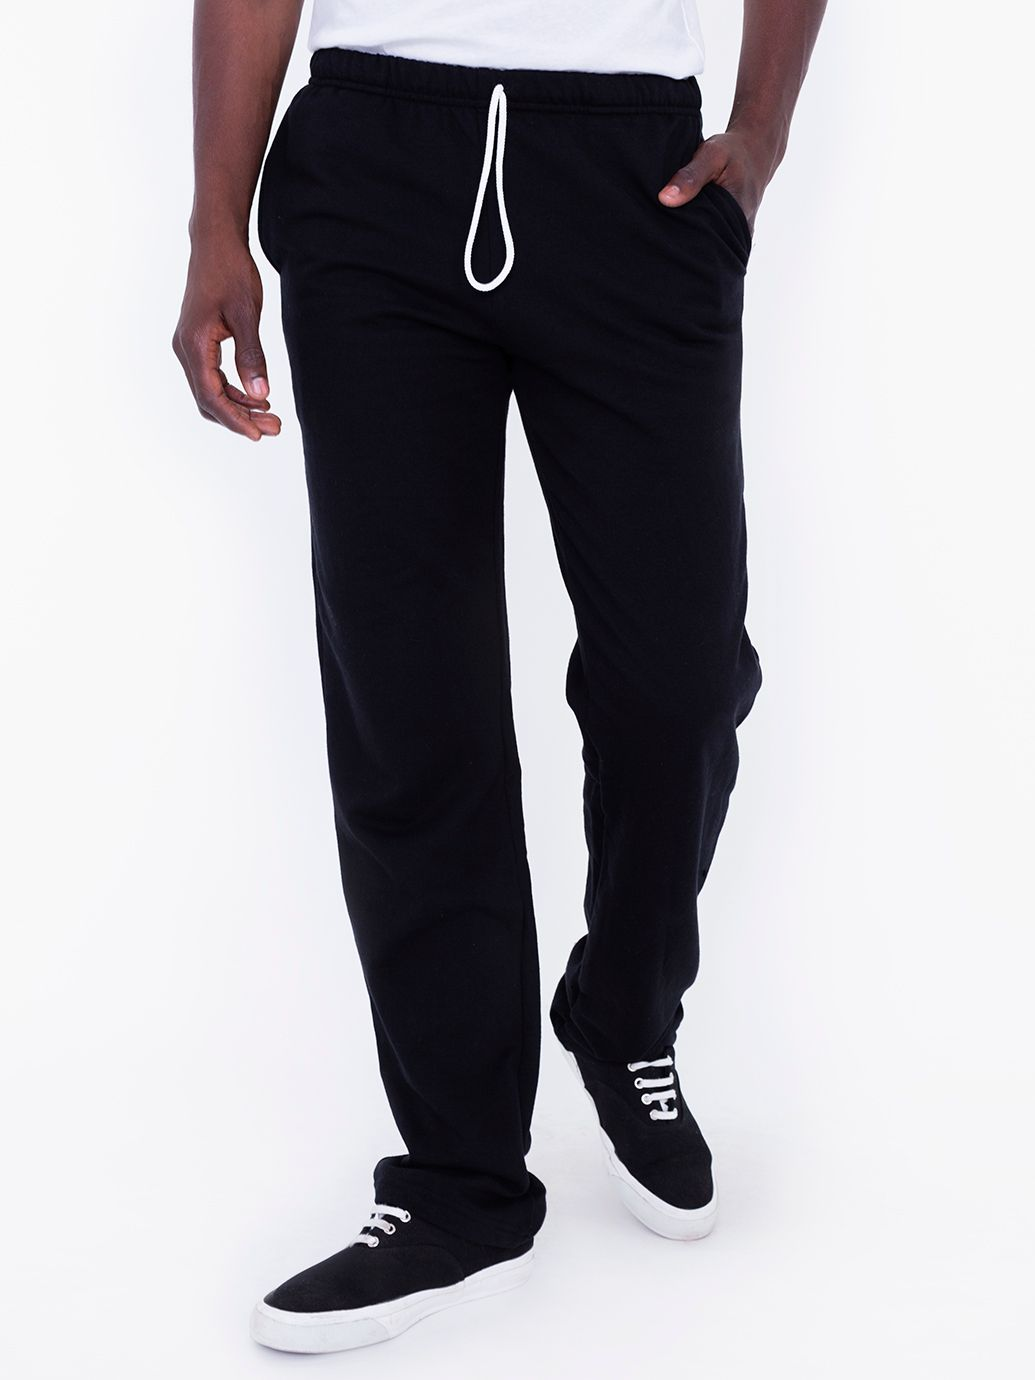 American Apparel California Fleece Mens Pants